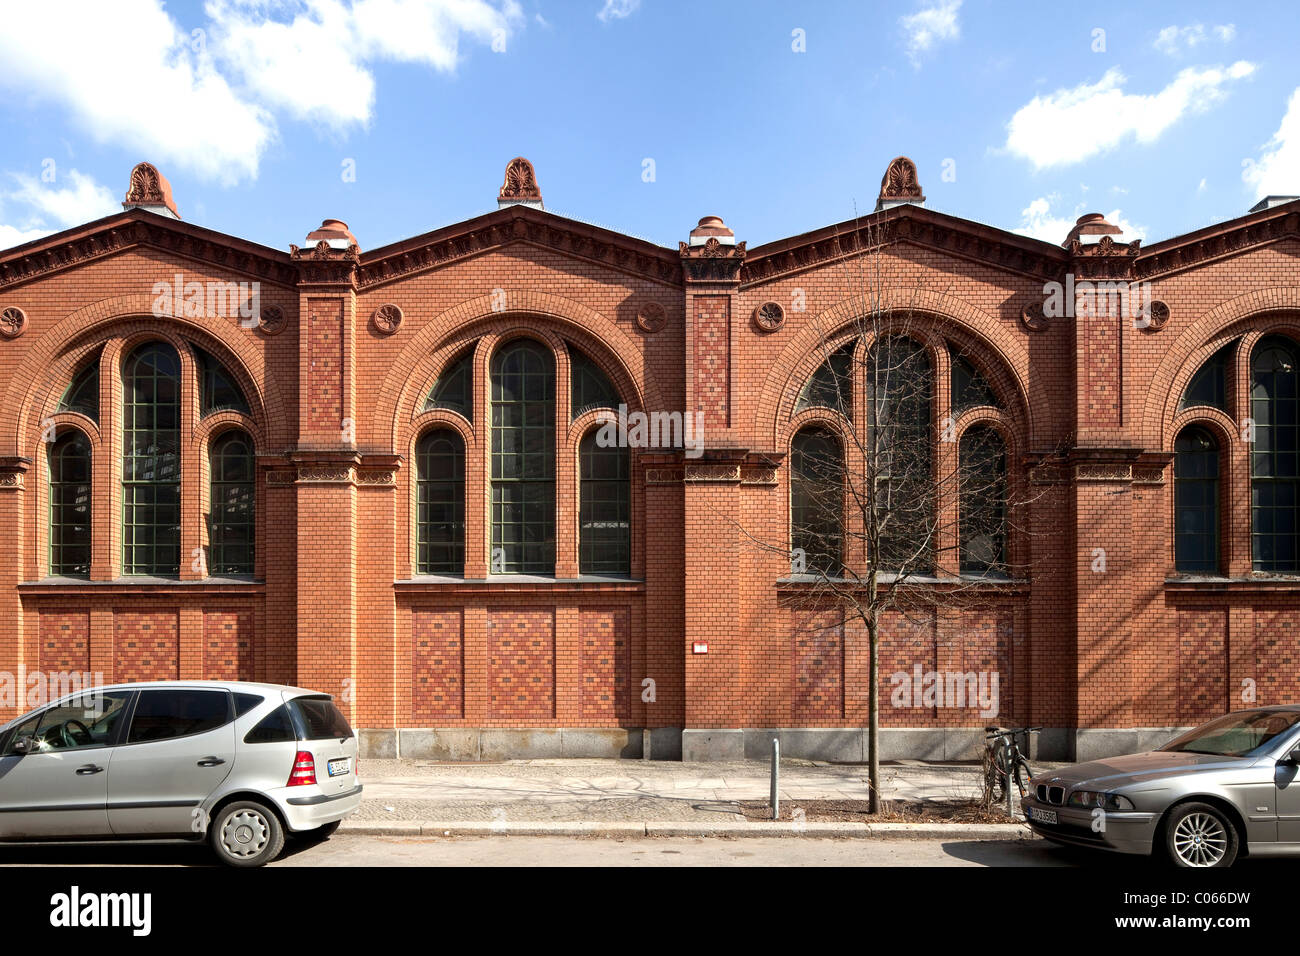 Markthalle Moabit, market hall, Tiergarten, Berlin, Germany, Europe - Stock Image